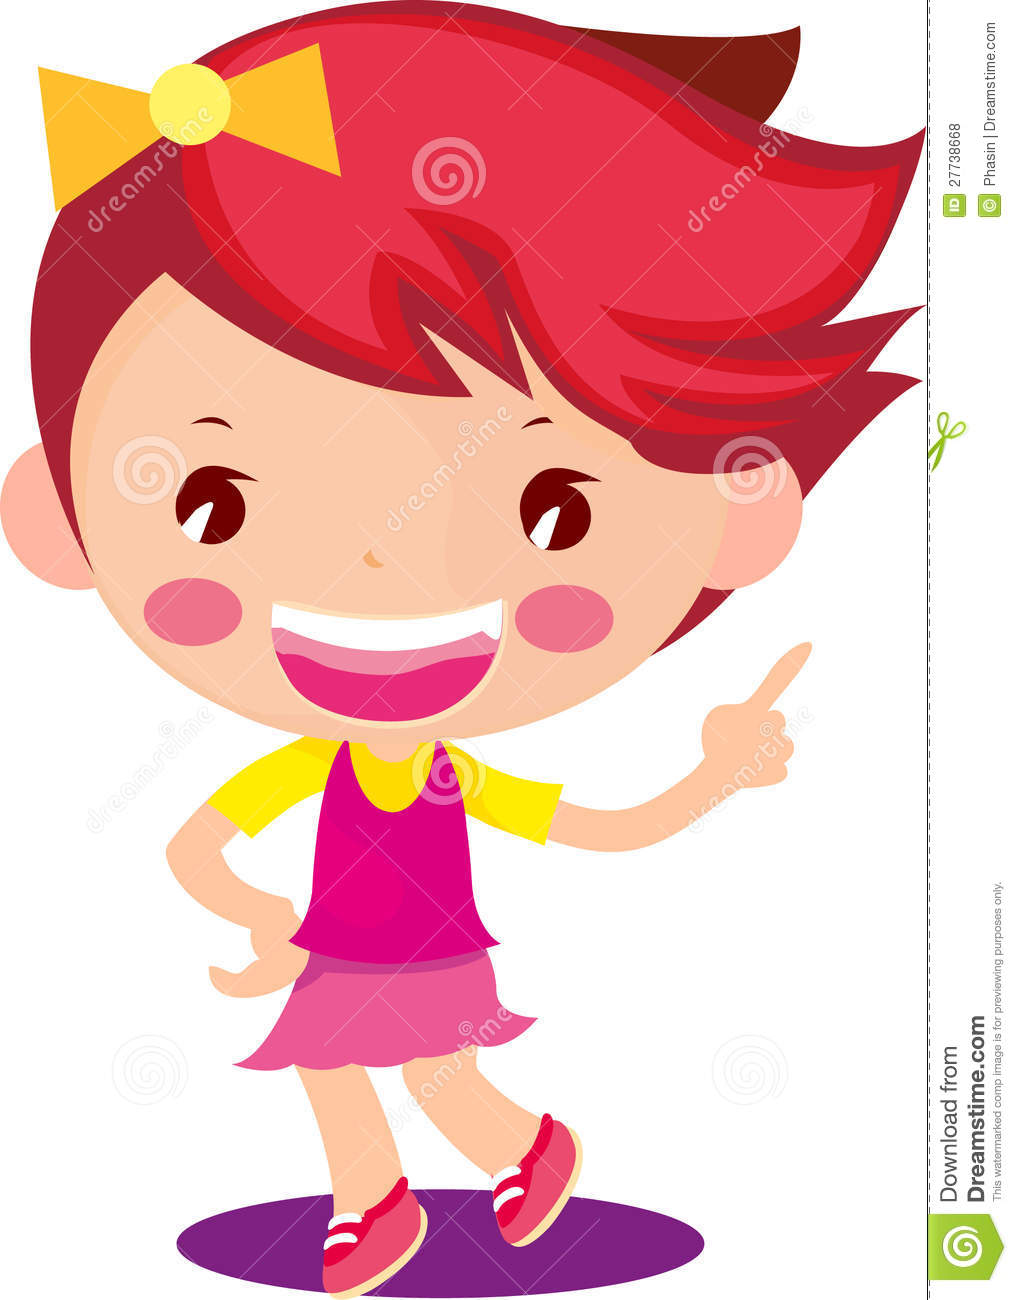 More similar stock images of ` Cute Little Girl Cartoon ...